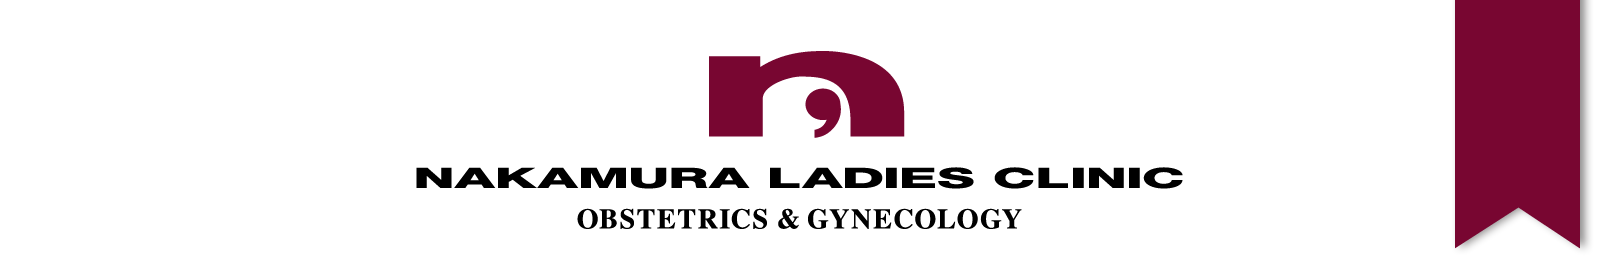 Nakamura Ladies clinic Obstetrics & Gynecology